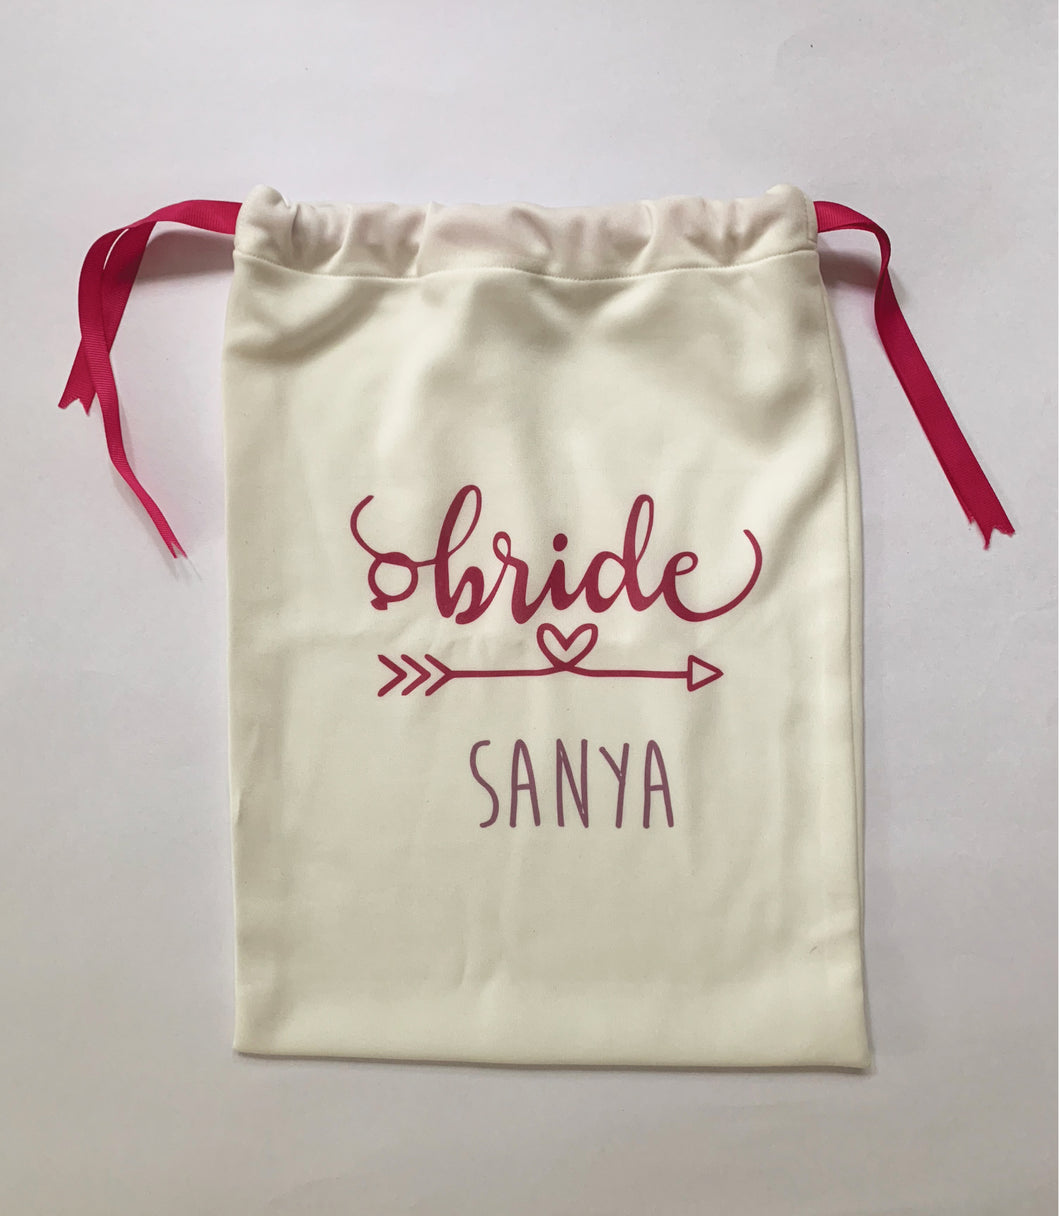 drawstring bags, personalised bags, bachelorette gifts